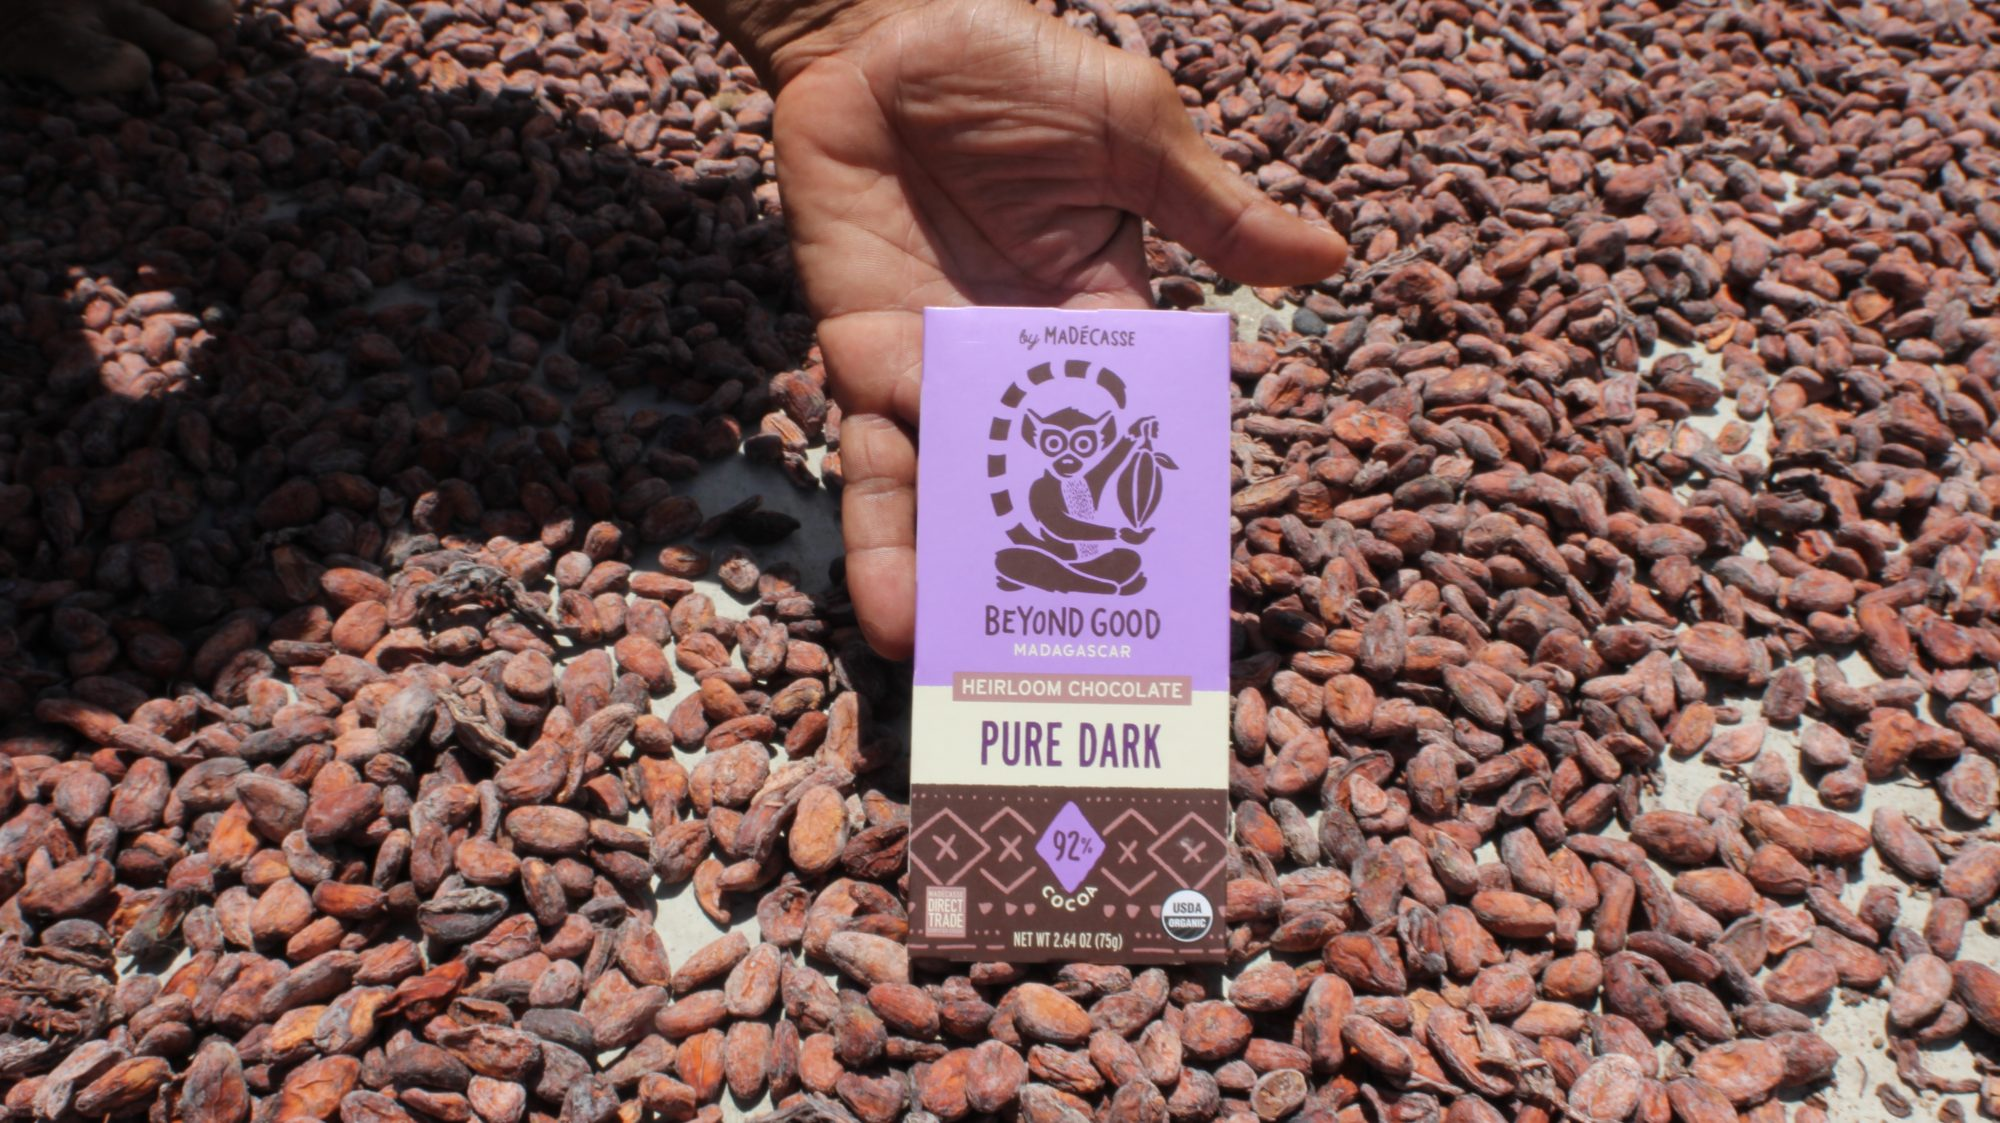 Madecasse chocolate bar and cacao beans